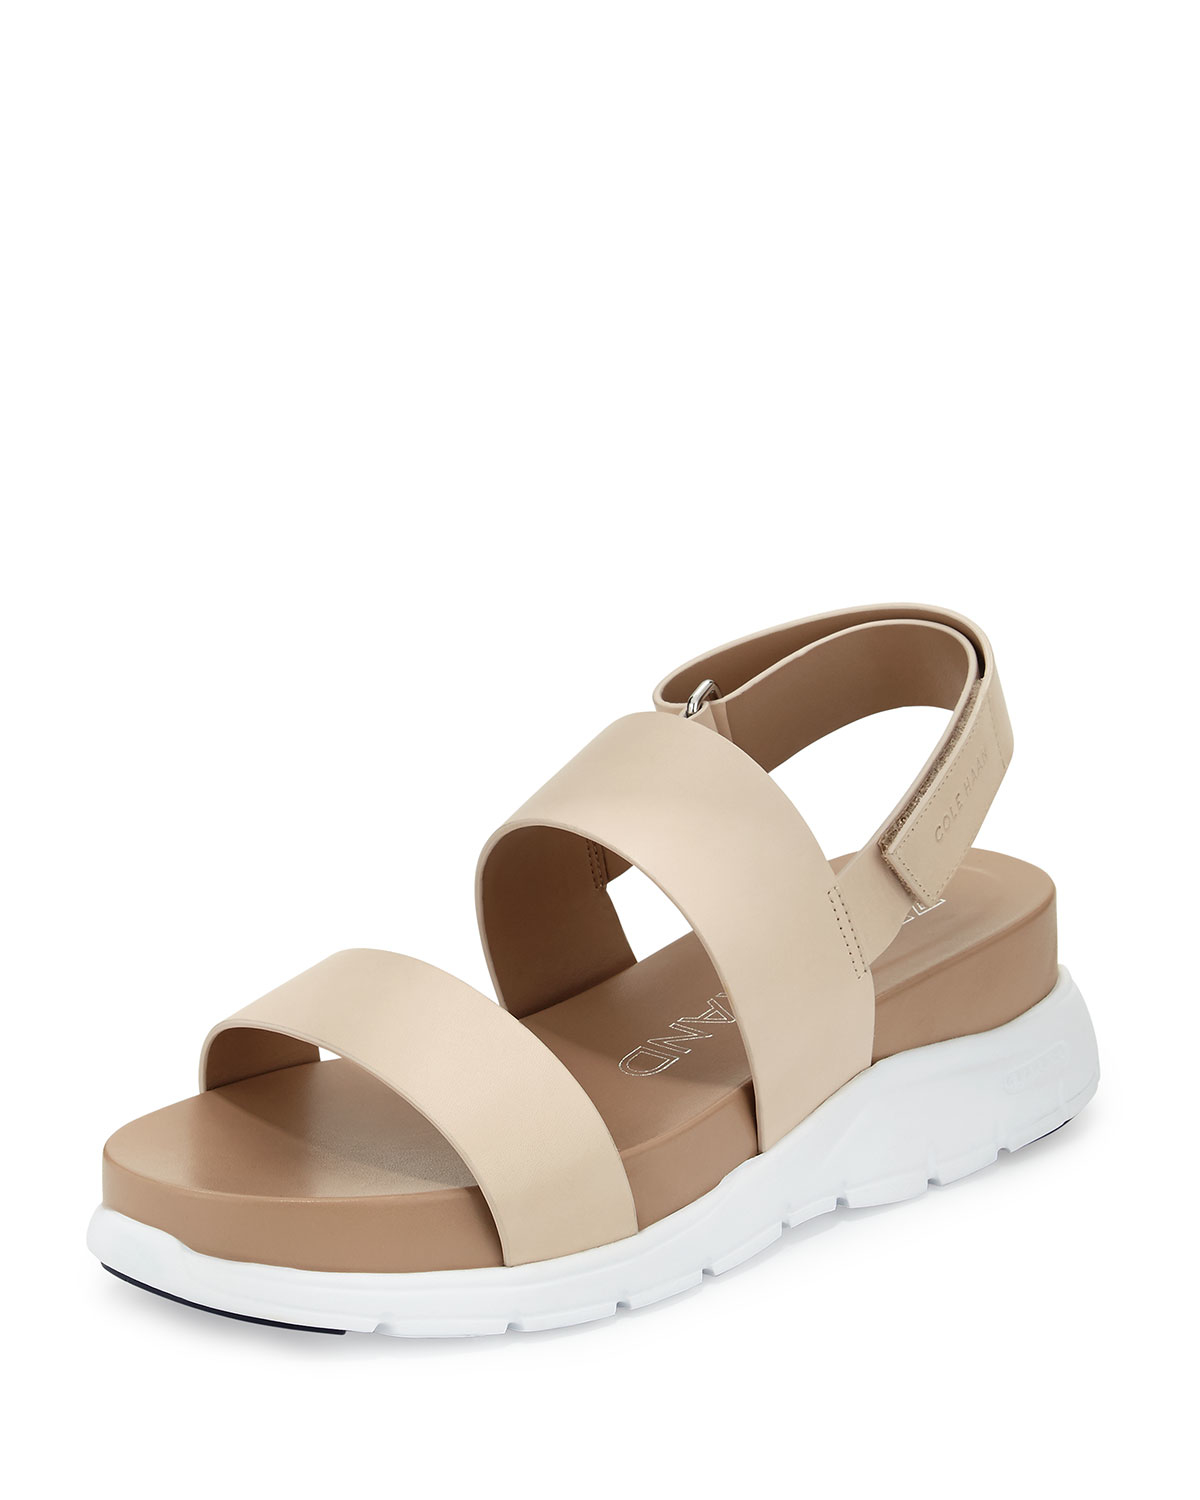 Excellent Cole Haan Offers Its Cole Haan Womens Fenley Leather Sandals In Black Or Nude For $11995 Coupon Code &quotSAVE&quot Drops It To $8397 With $5 For Shipping, Thats The Lowest Price We Could Find By $31 Theyre Available In Select Sizes